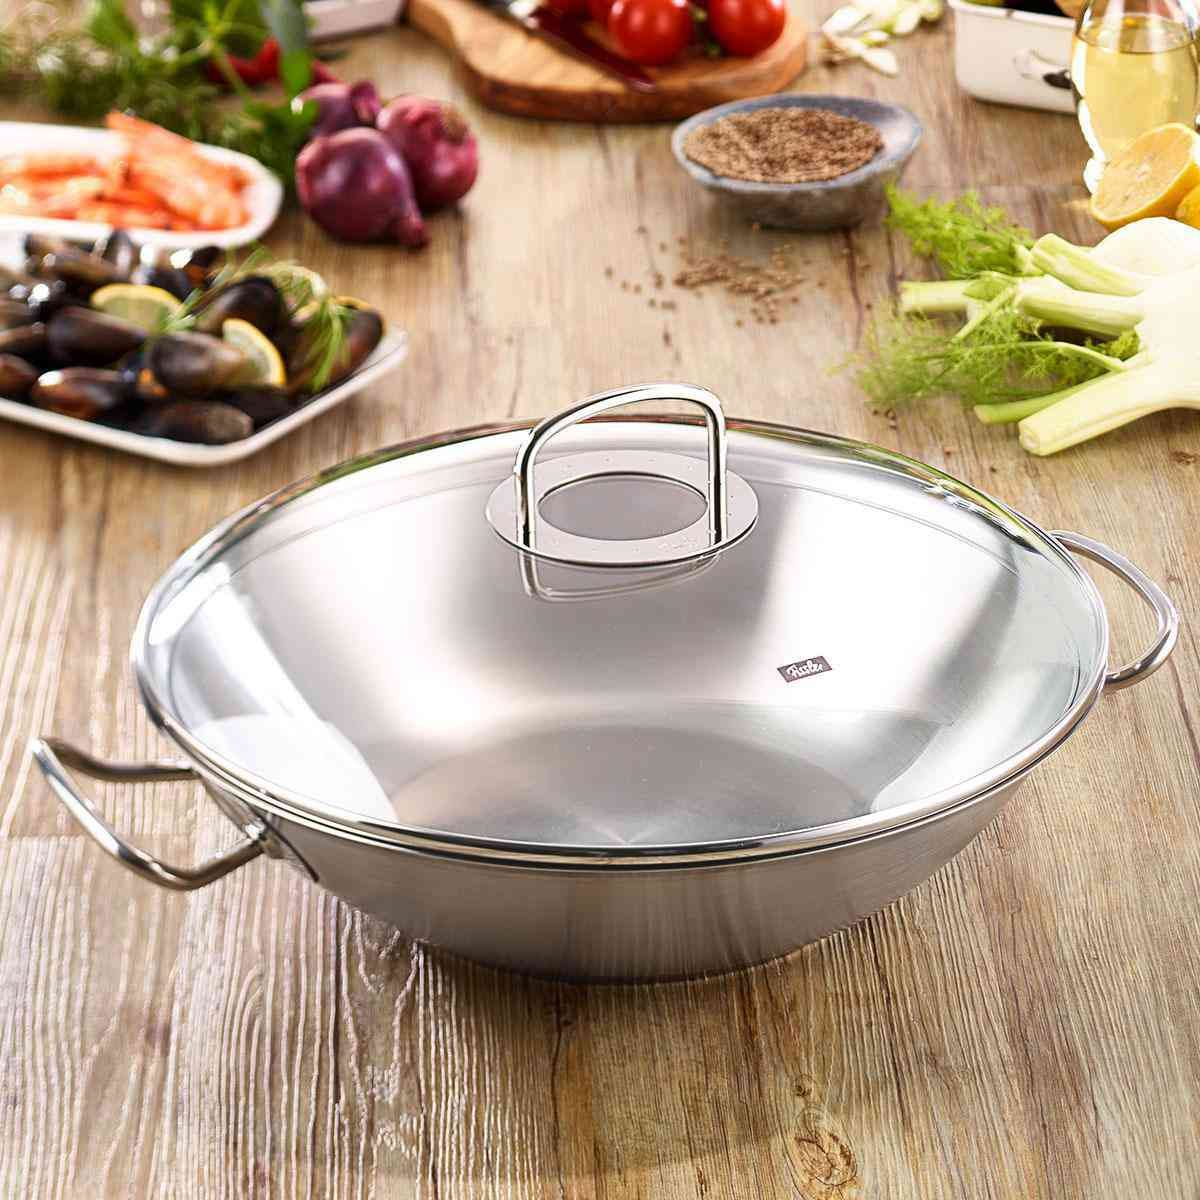 originial-profi collection® Wok with Glass Lid, 13.8 Inch